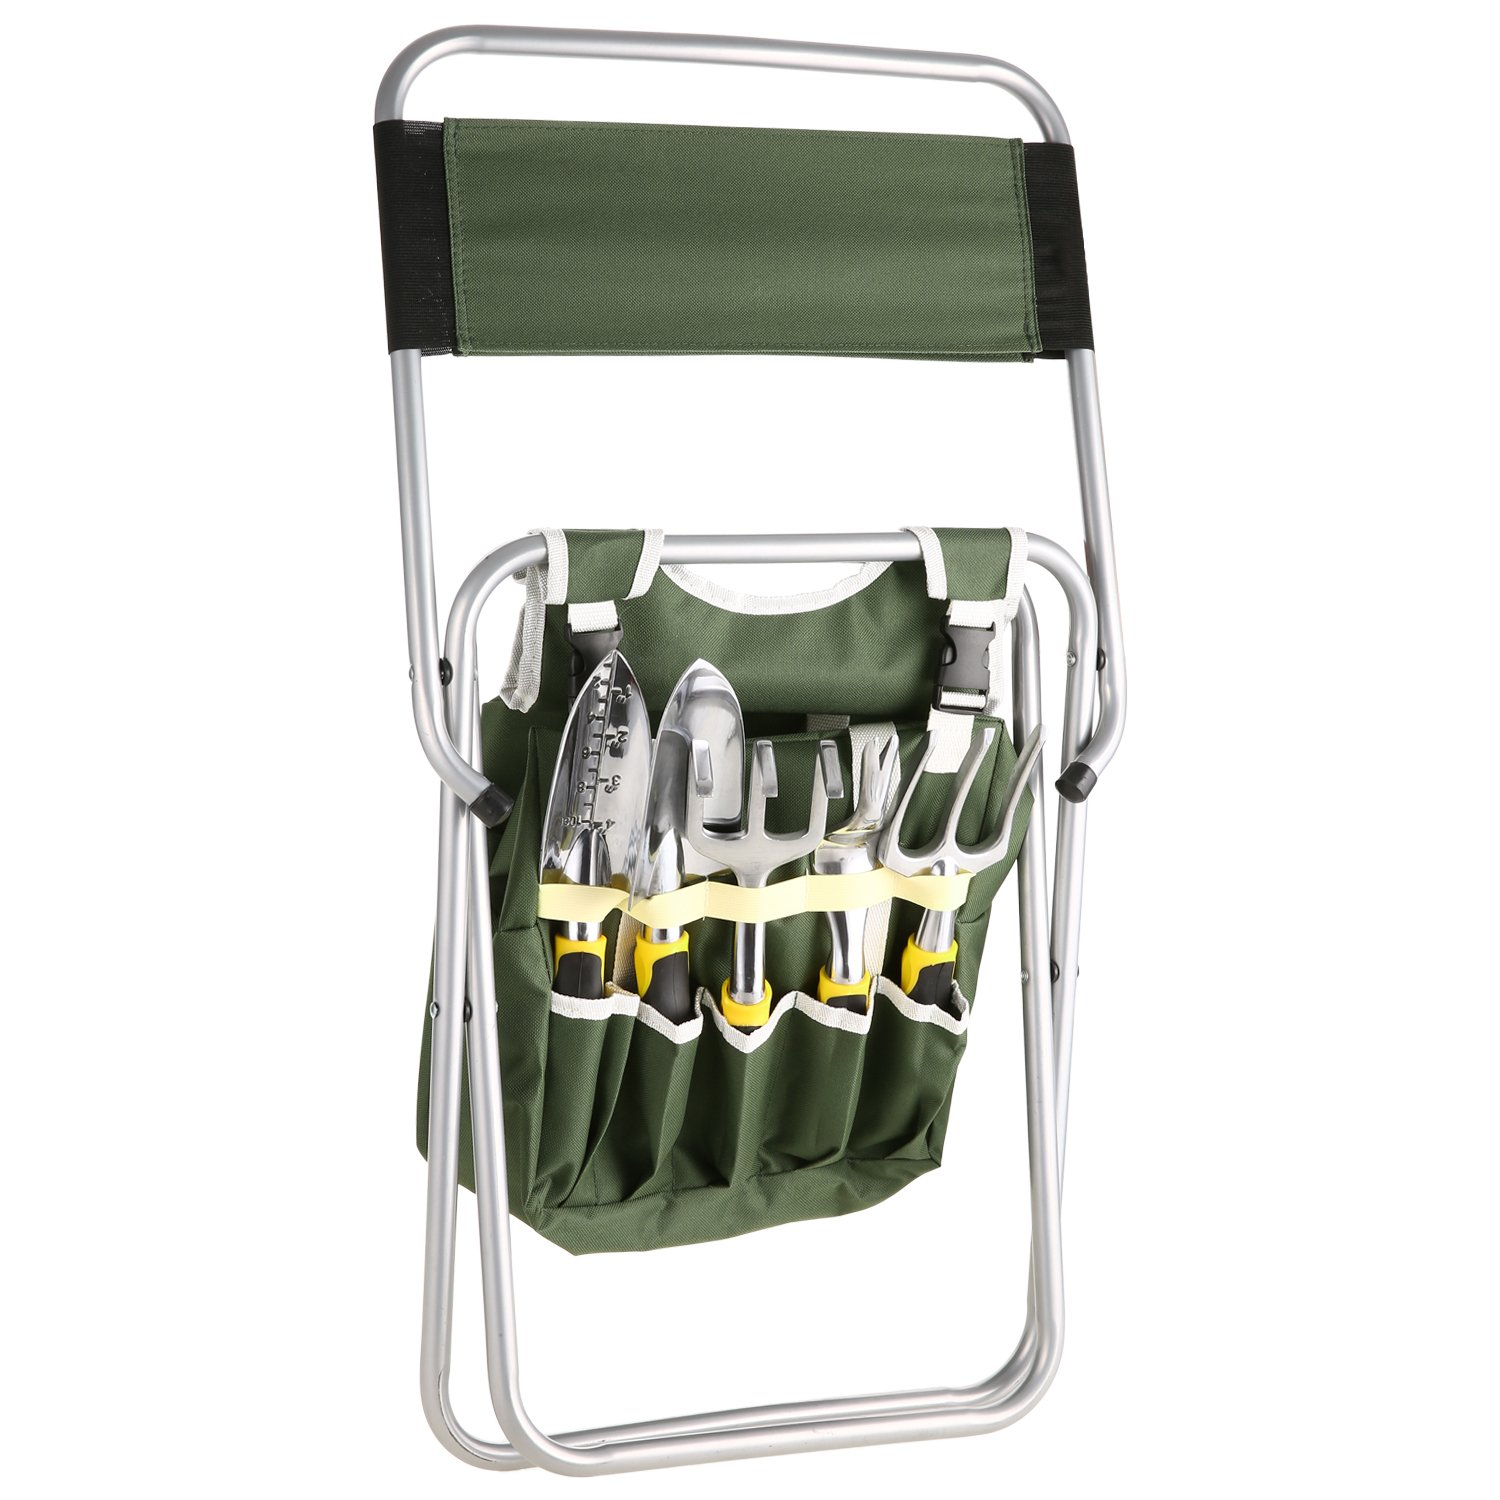 Moroly 10 Piece Garden Tool Set with 5 Sturdy Stainless Steel Tools,Heavy Duty Folding Seat Stool with Backrest,Detachable Canvas Tote,Best Gardening Gifts Tool Set by Moroly (Image #3)